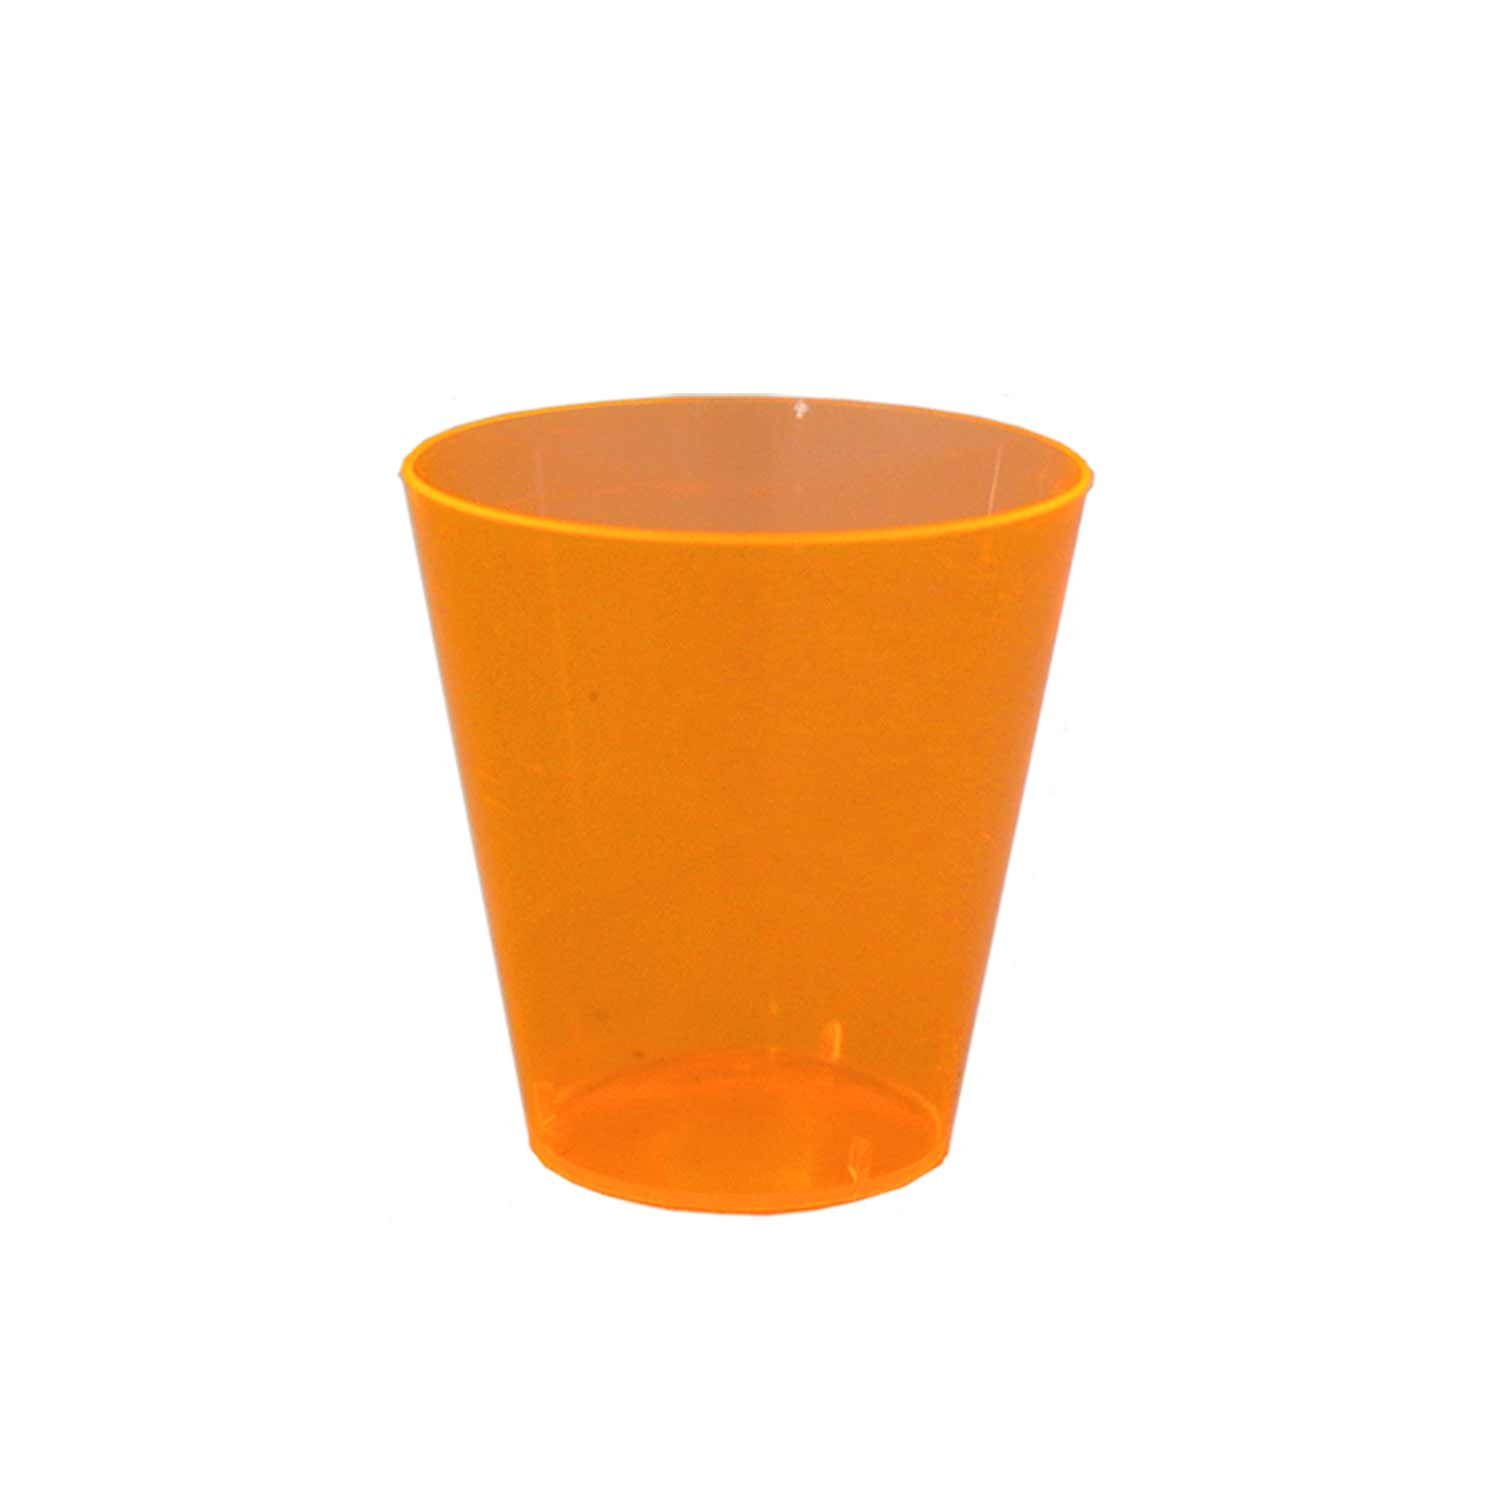 Party Essentials N25055 Brights Plastic Shot Glass, 2 oz. Capacity, Neon Orange (20 Packs of 50) by Party Essentials